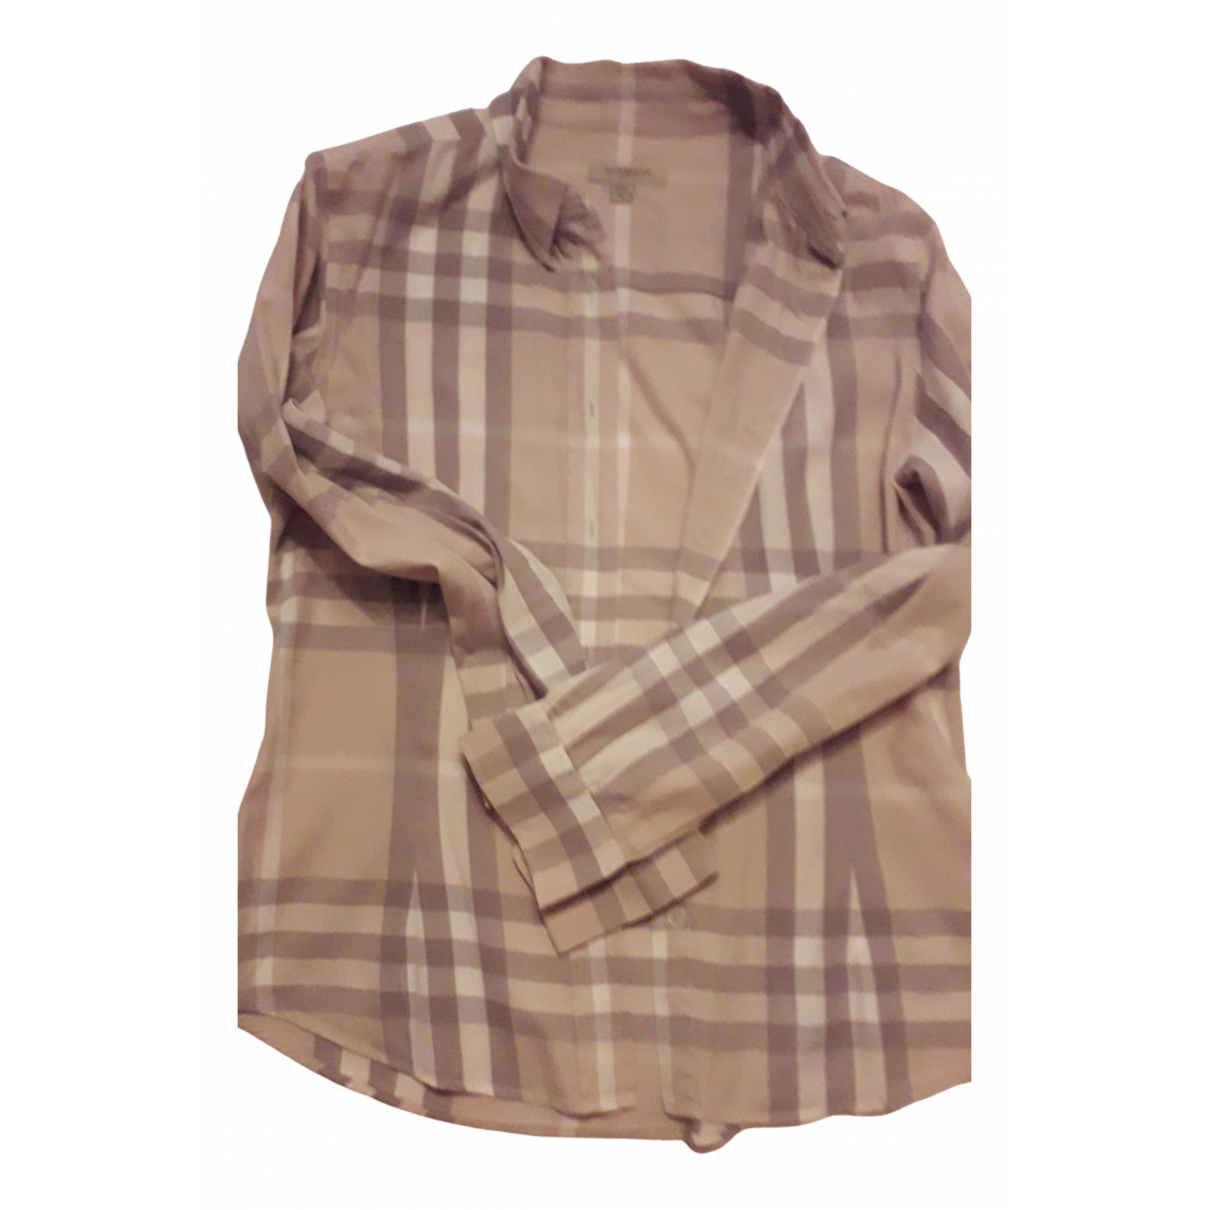 Burberry \N Beige Cotton  top for Women S International